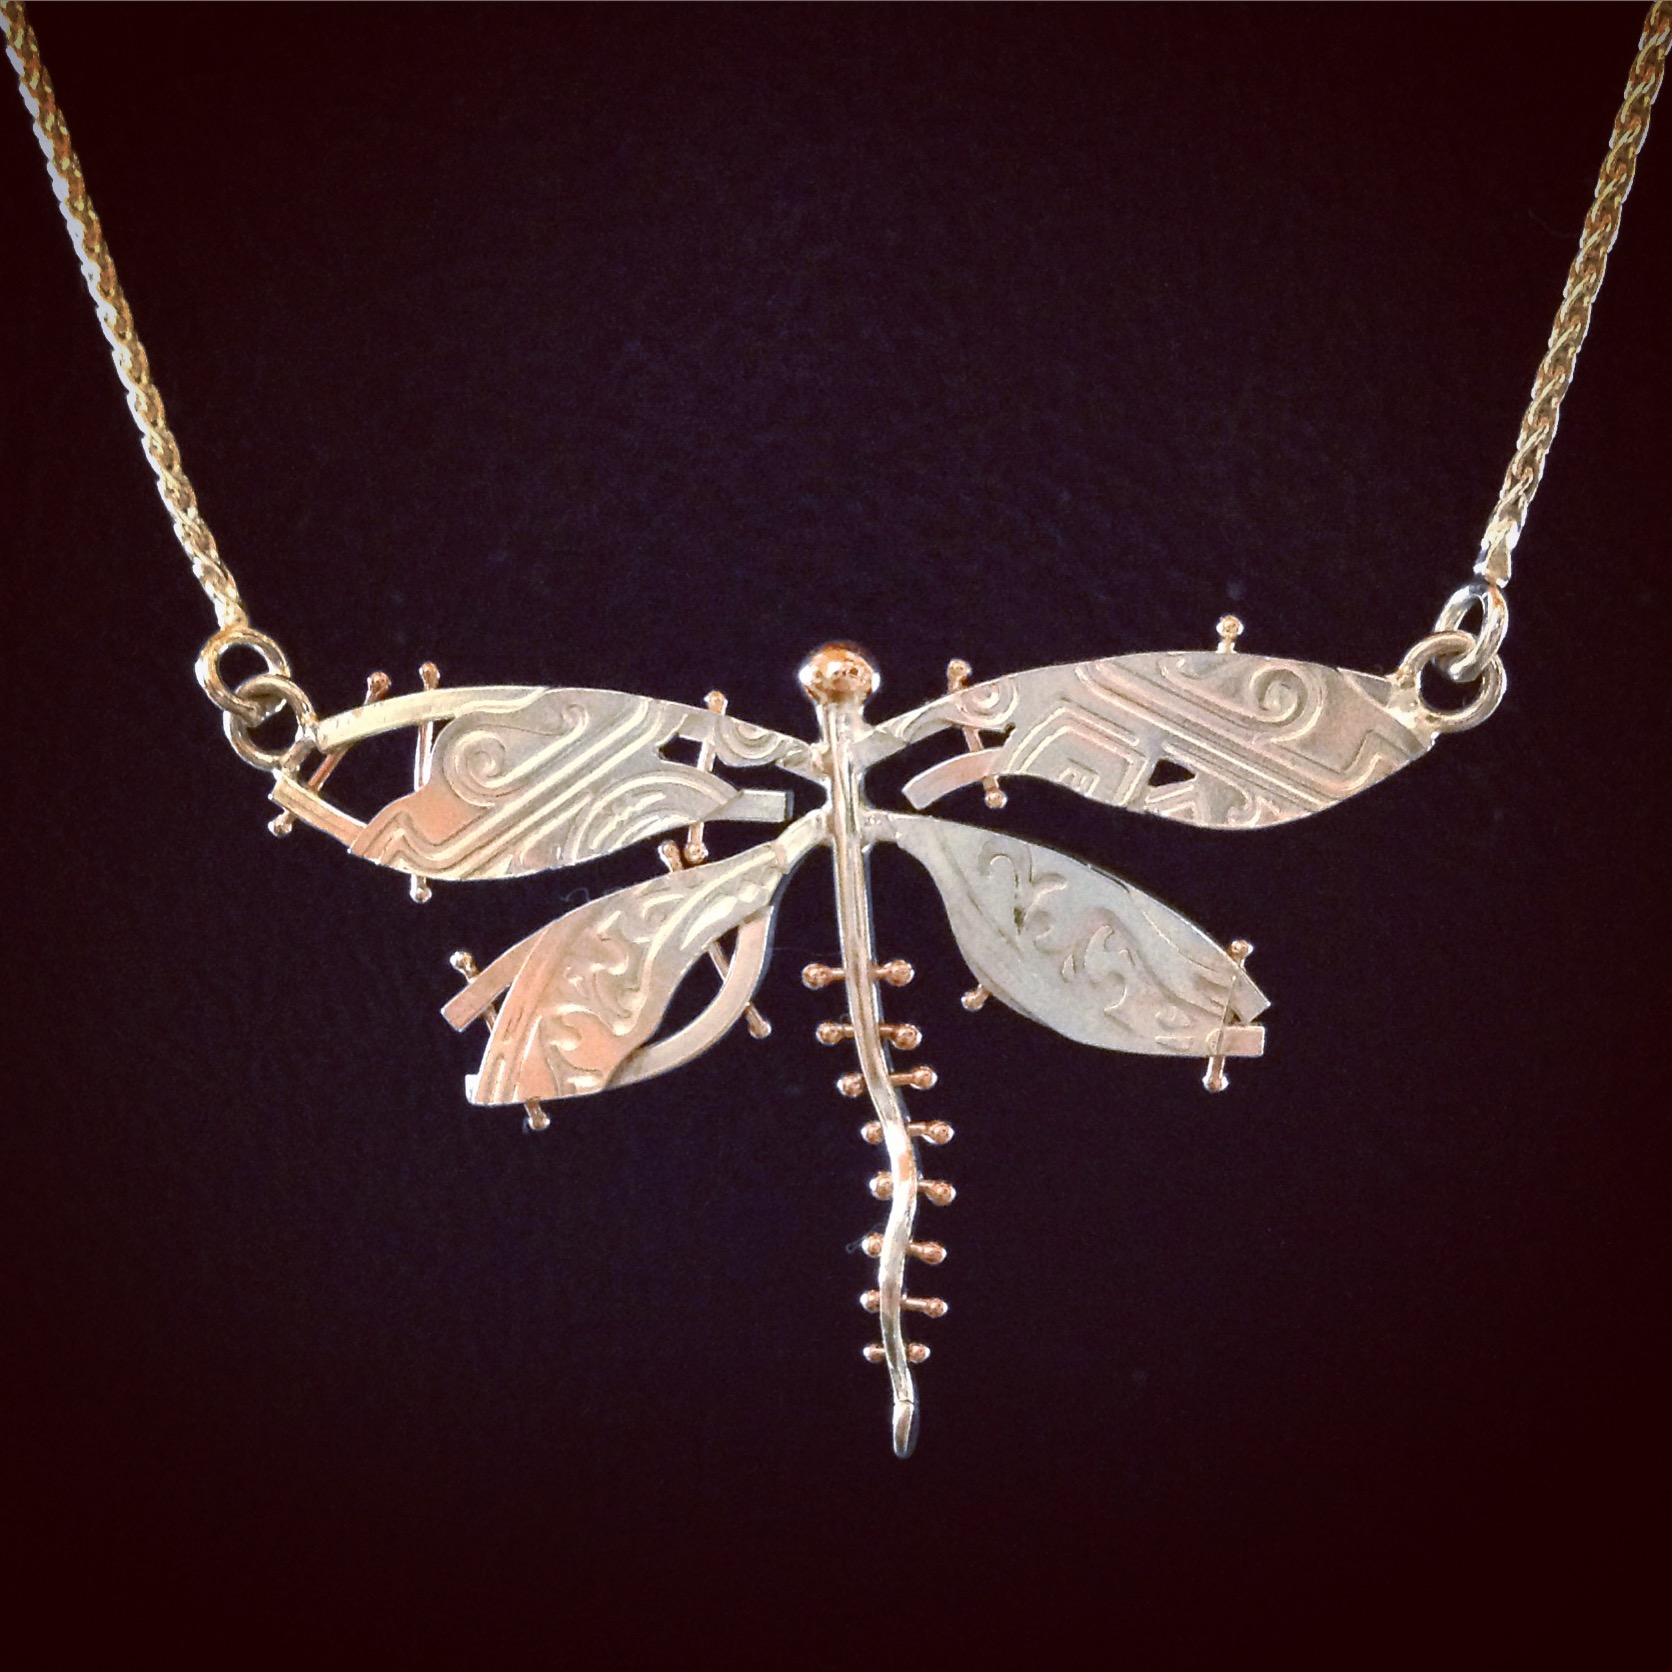 Enter The Dragonfly